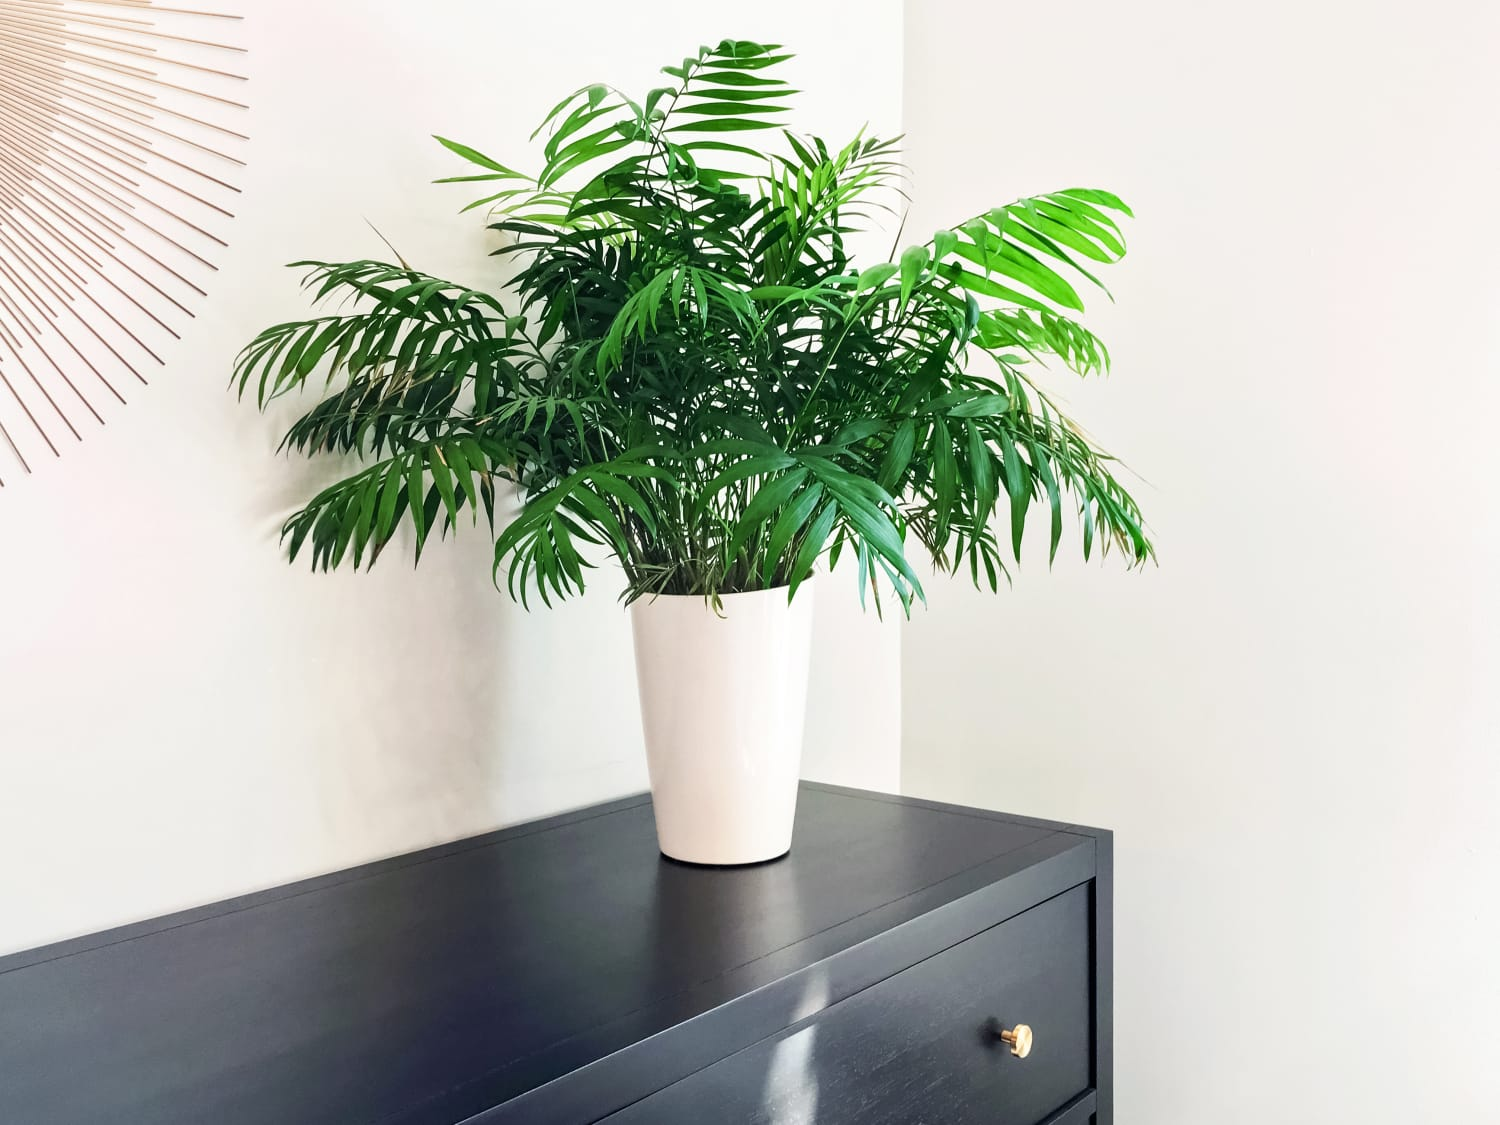 The Difference Between Parlor Palm, Areca Palm, and All Those Other Palms